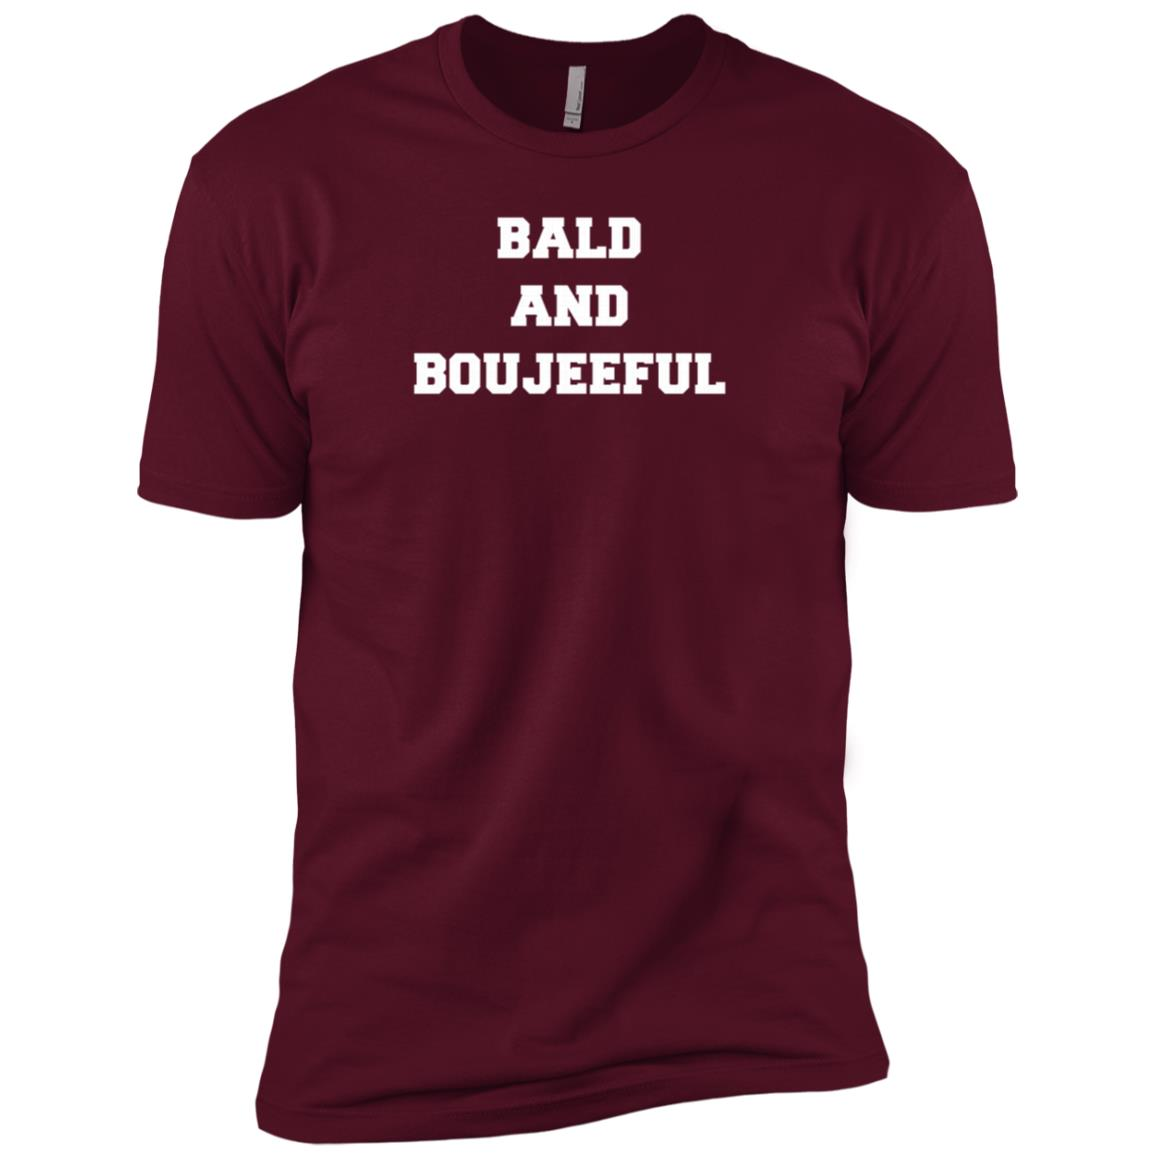 Bald and Boujeeful Balding Men are Beautiful Funny Men Short Sleeve T-Shirt